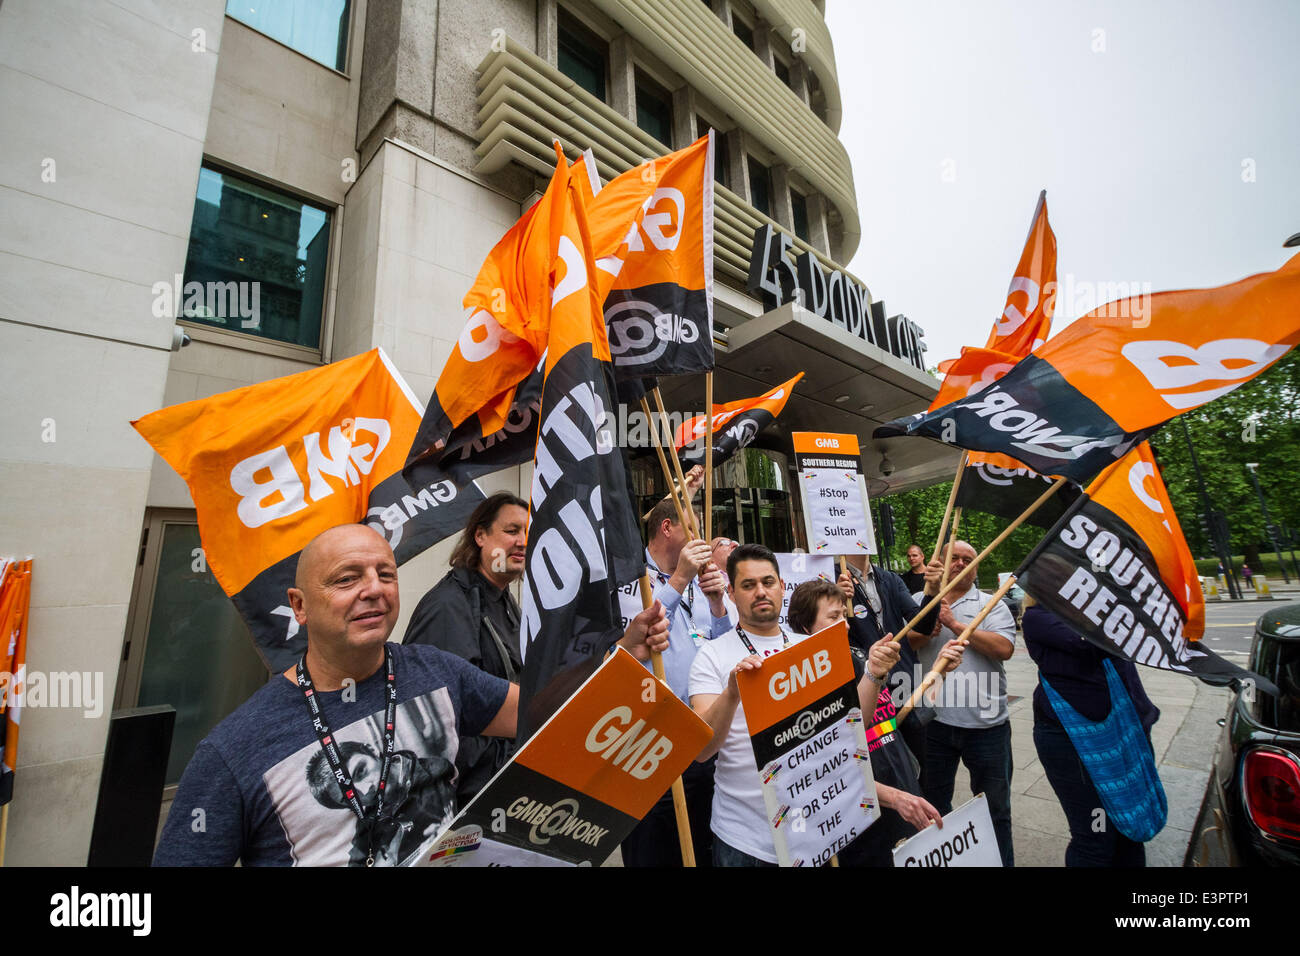 London, UK. 27th June, 2014. GMB and LGBT protest outside Park Lane hotel in London over homophobic laws Credit: - Stock Image